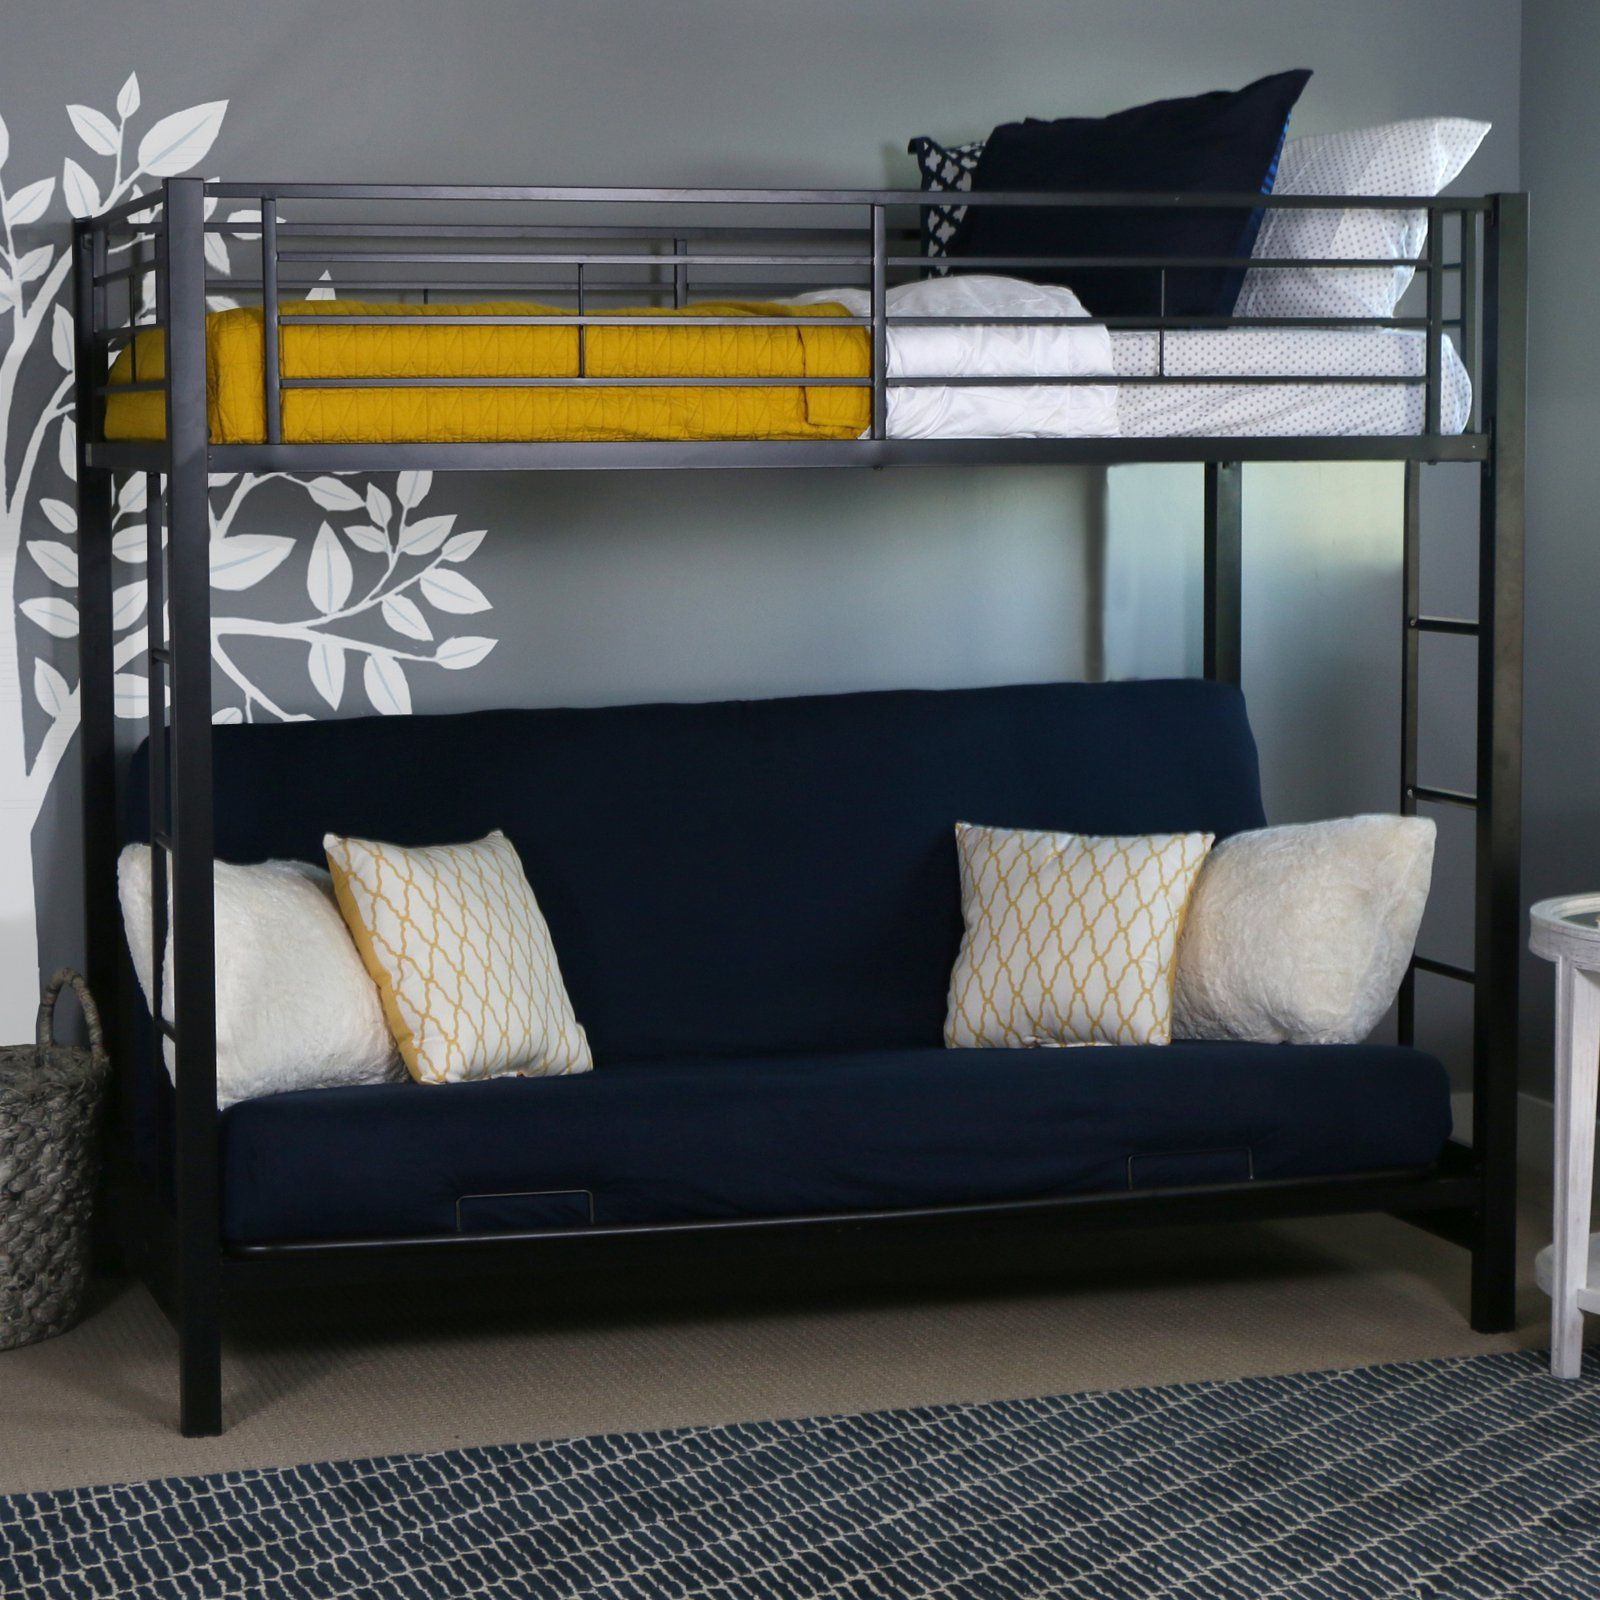 sunrise twin over futon bunk bed black btofbl products